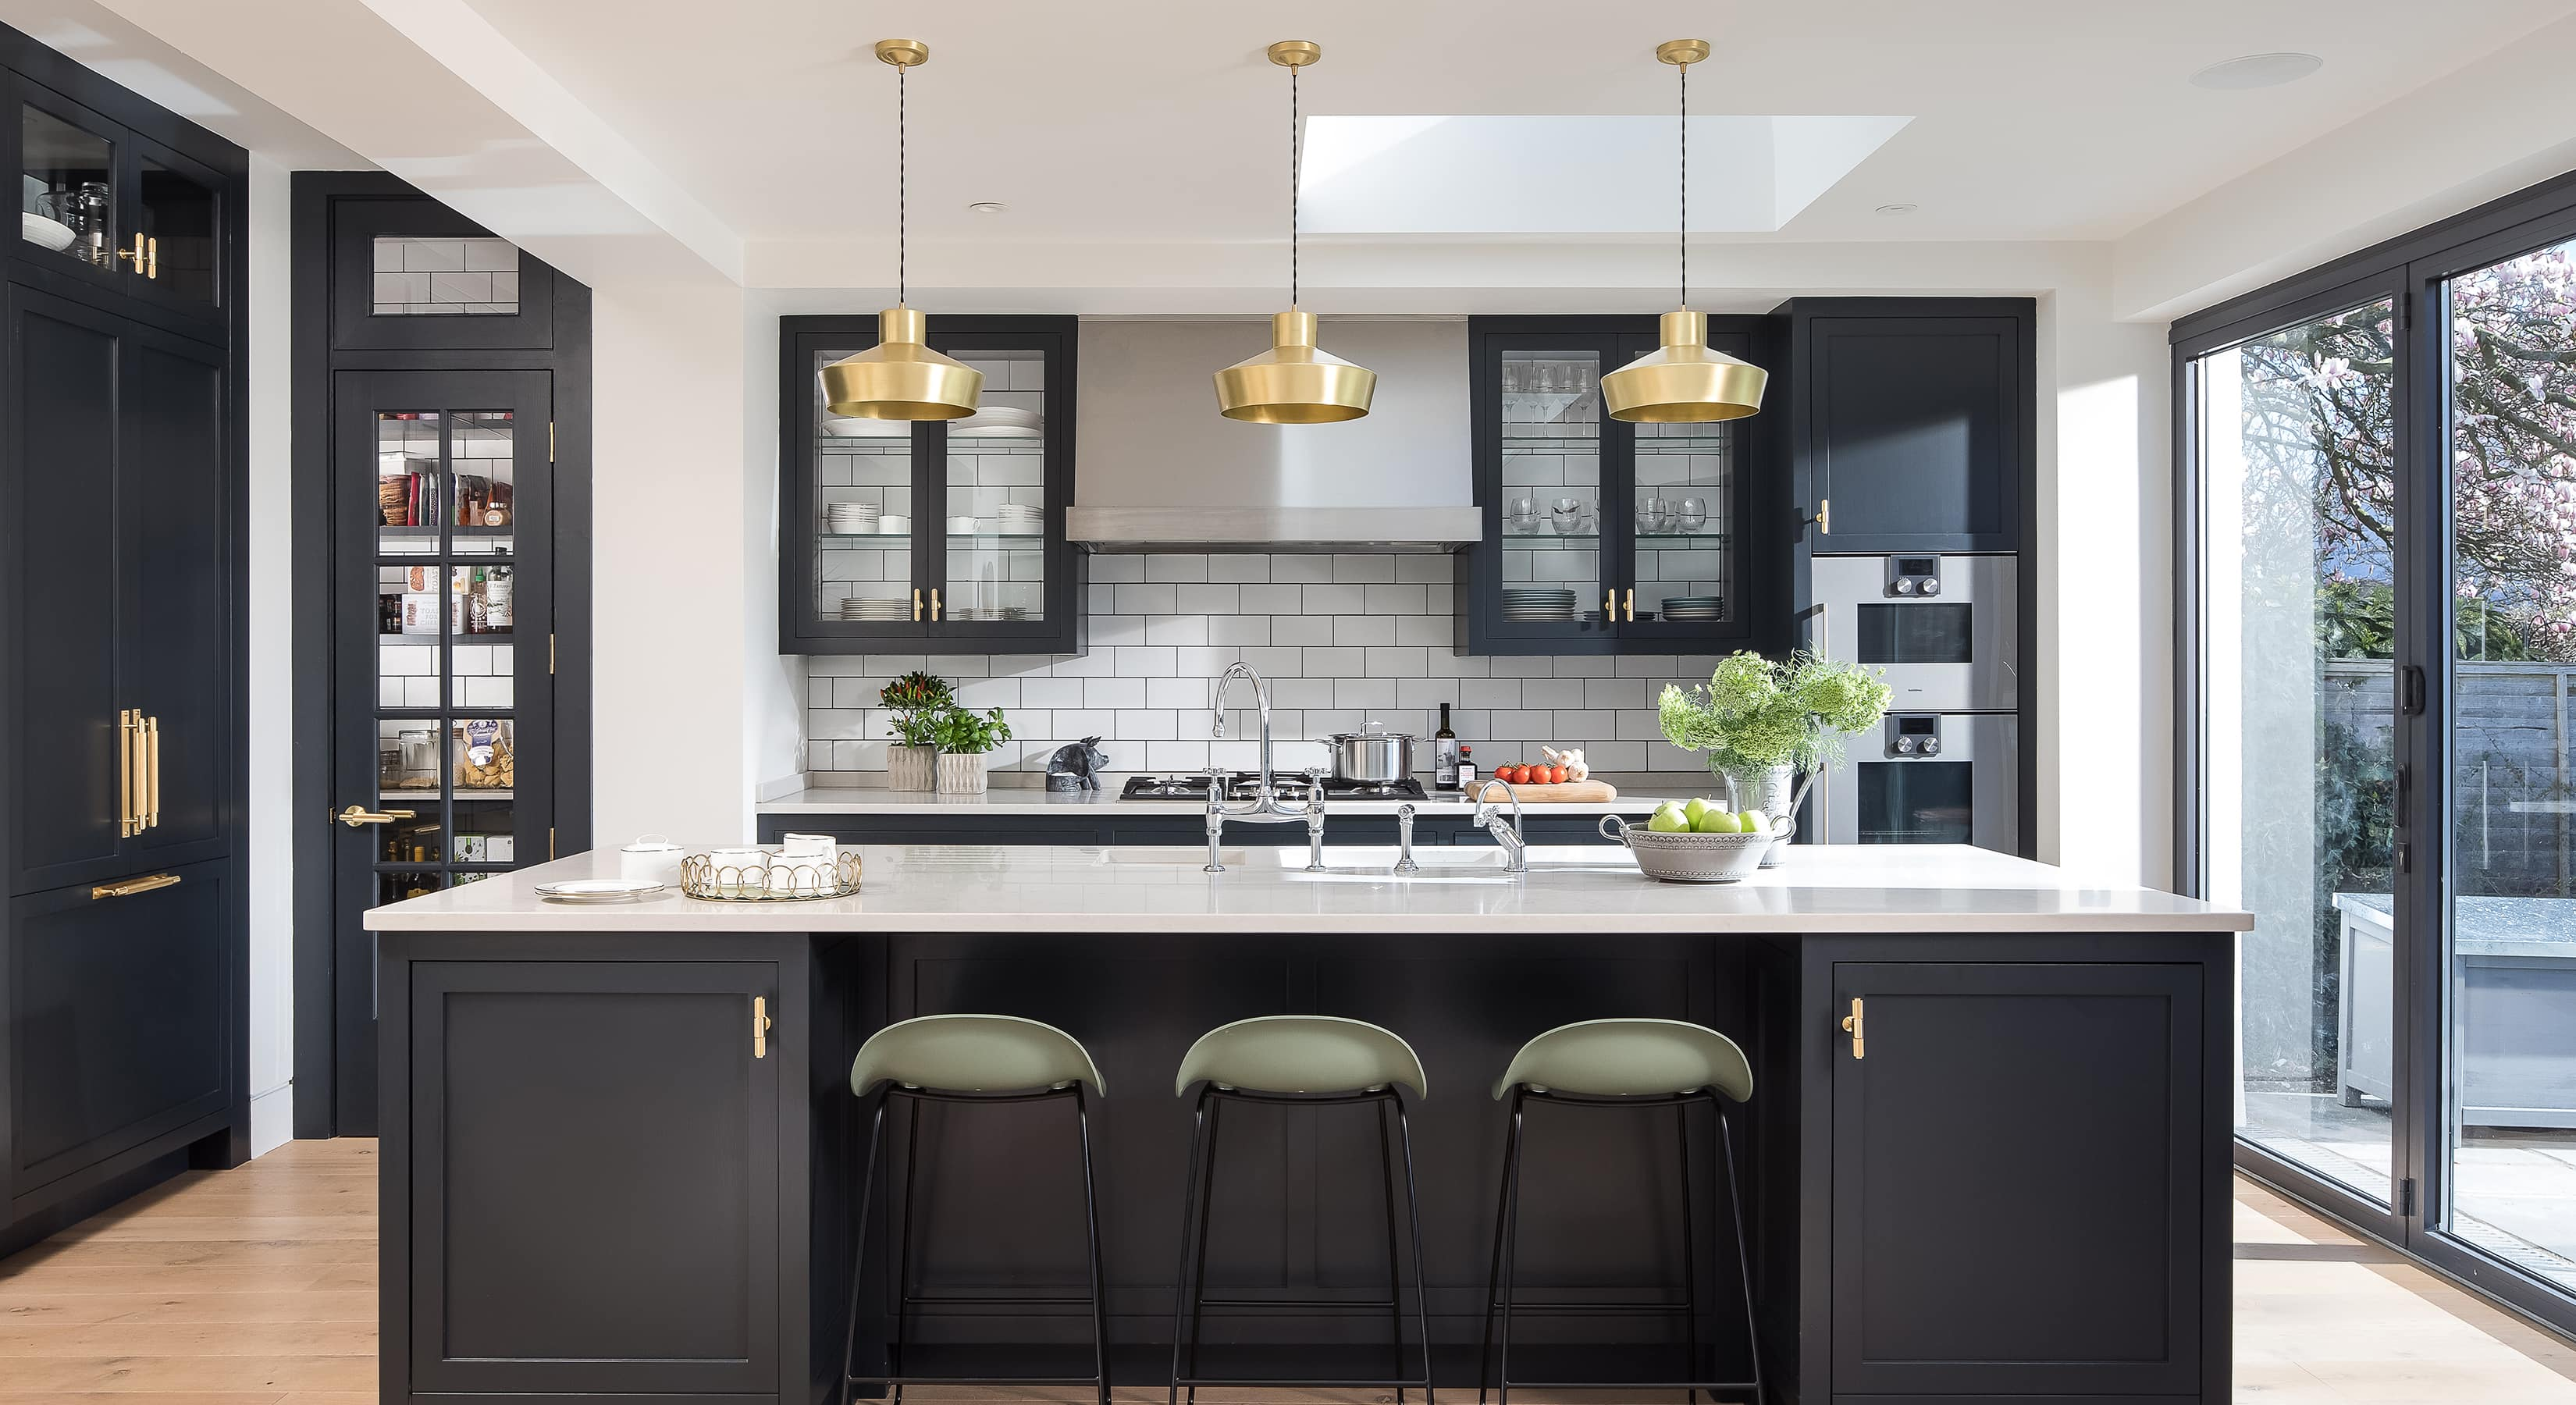 The Lowther kitchen extension concept